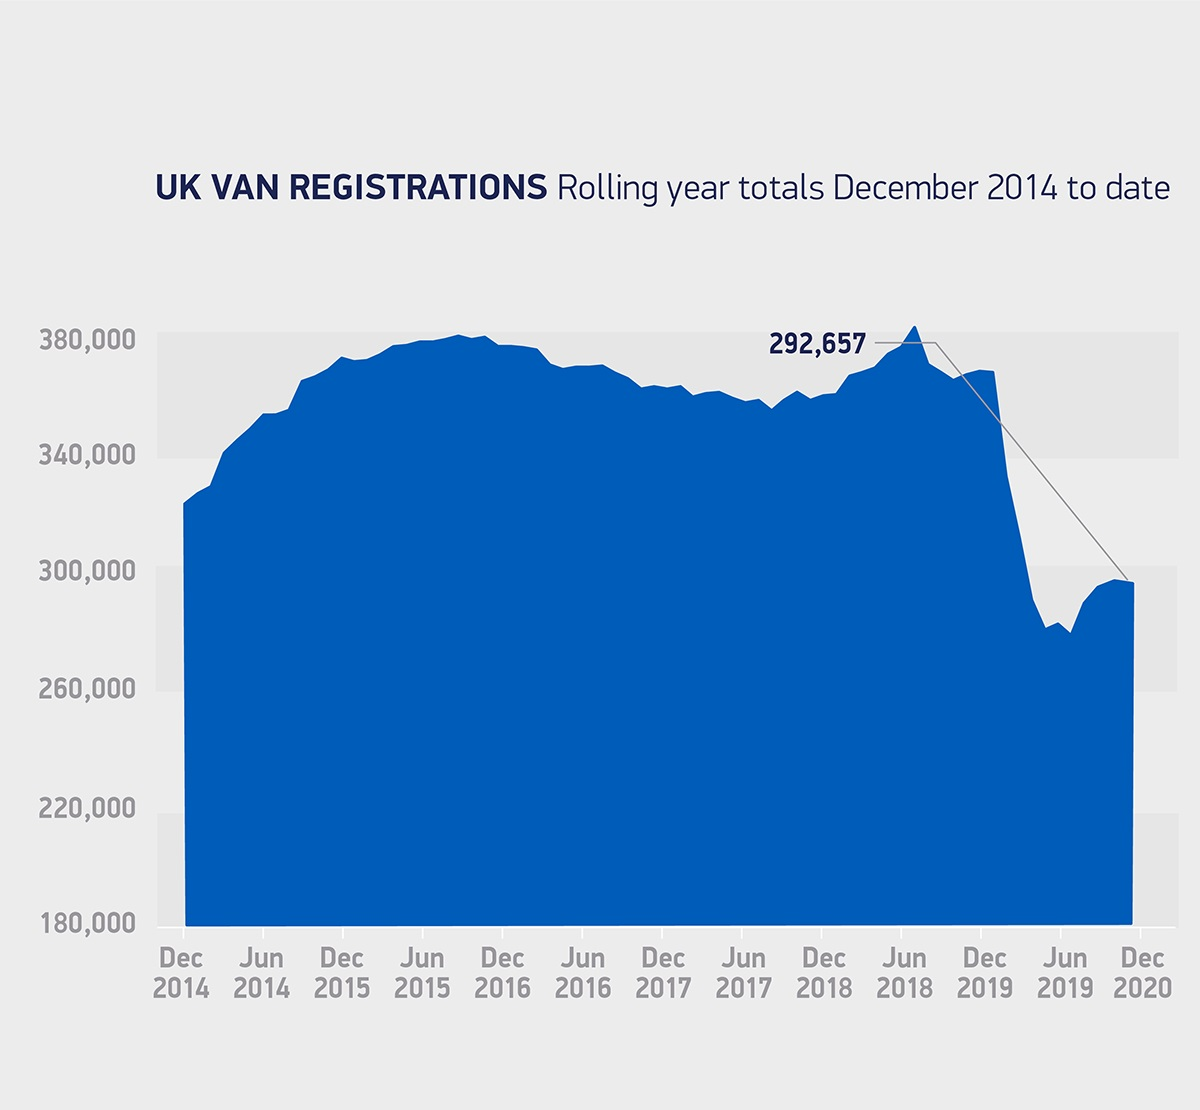 LCV-regs-rolling-year-totals-Dec-2014-to-date-2020